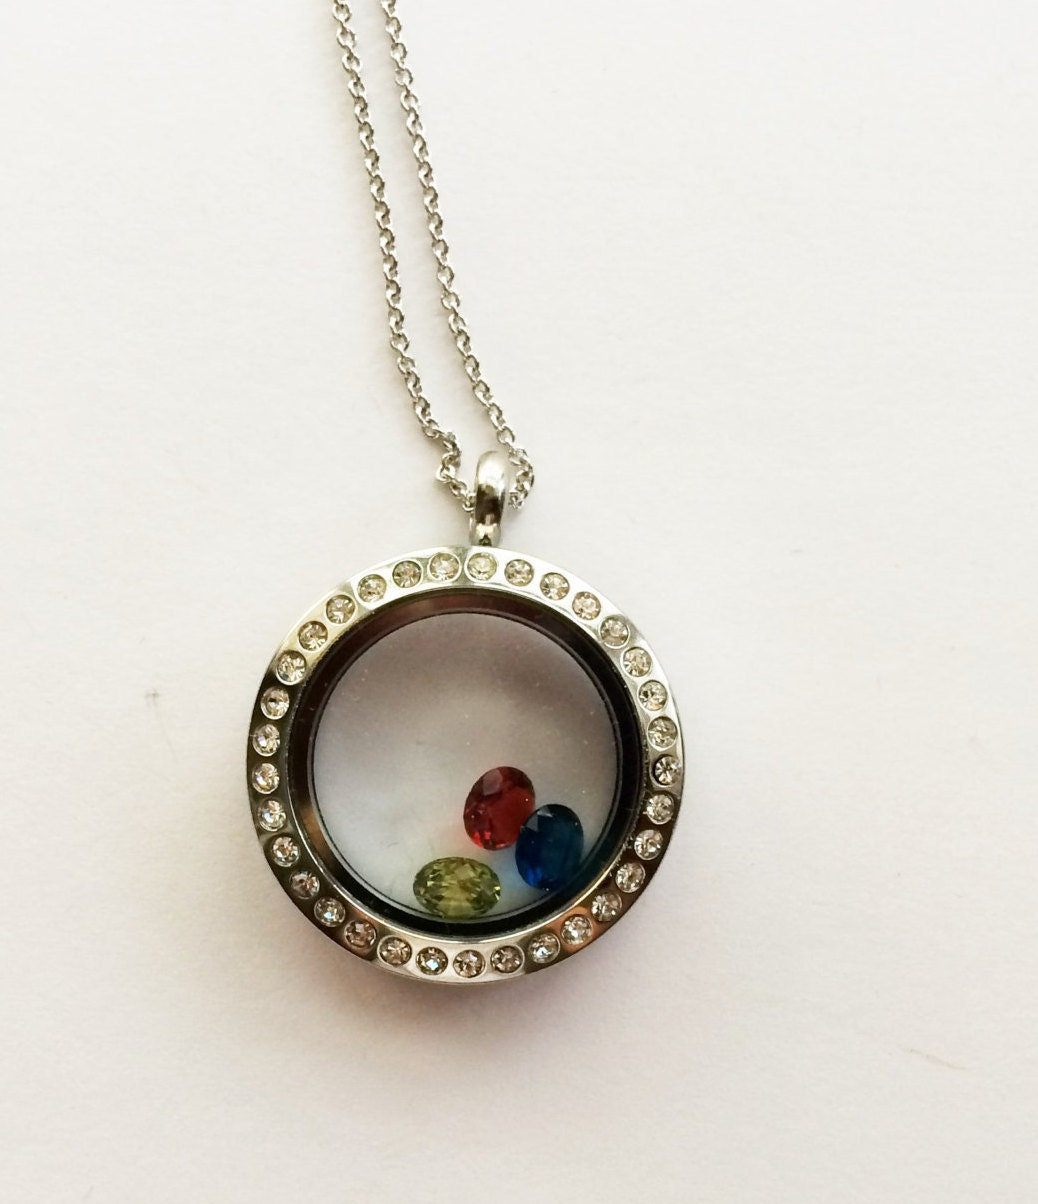 Birthstone locket necklace floating birthstones for Grandmother jewelry you can add to